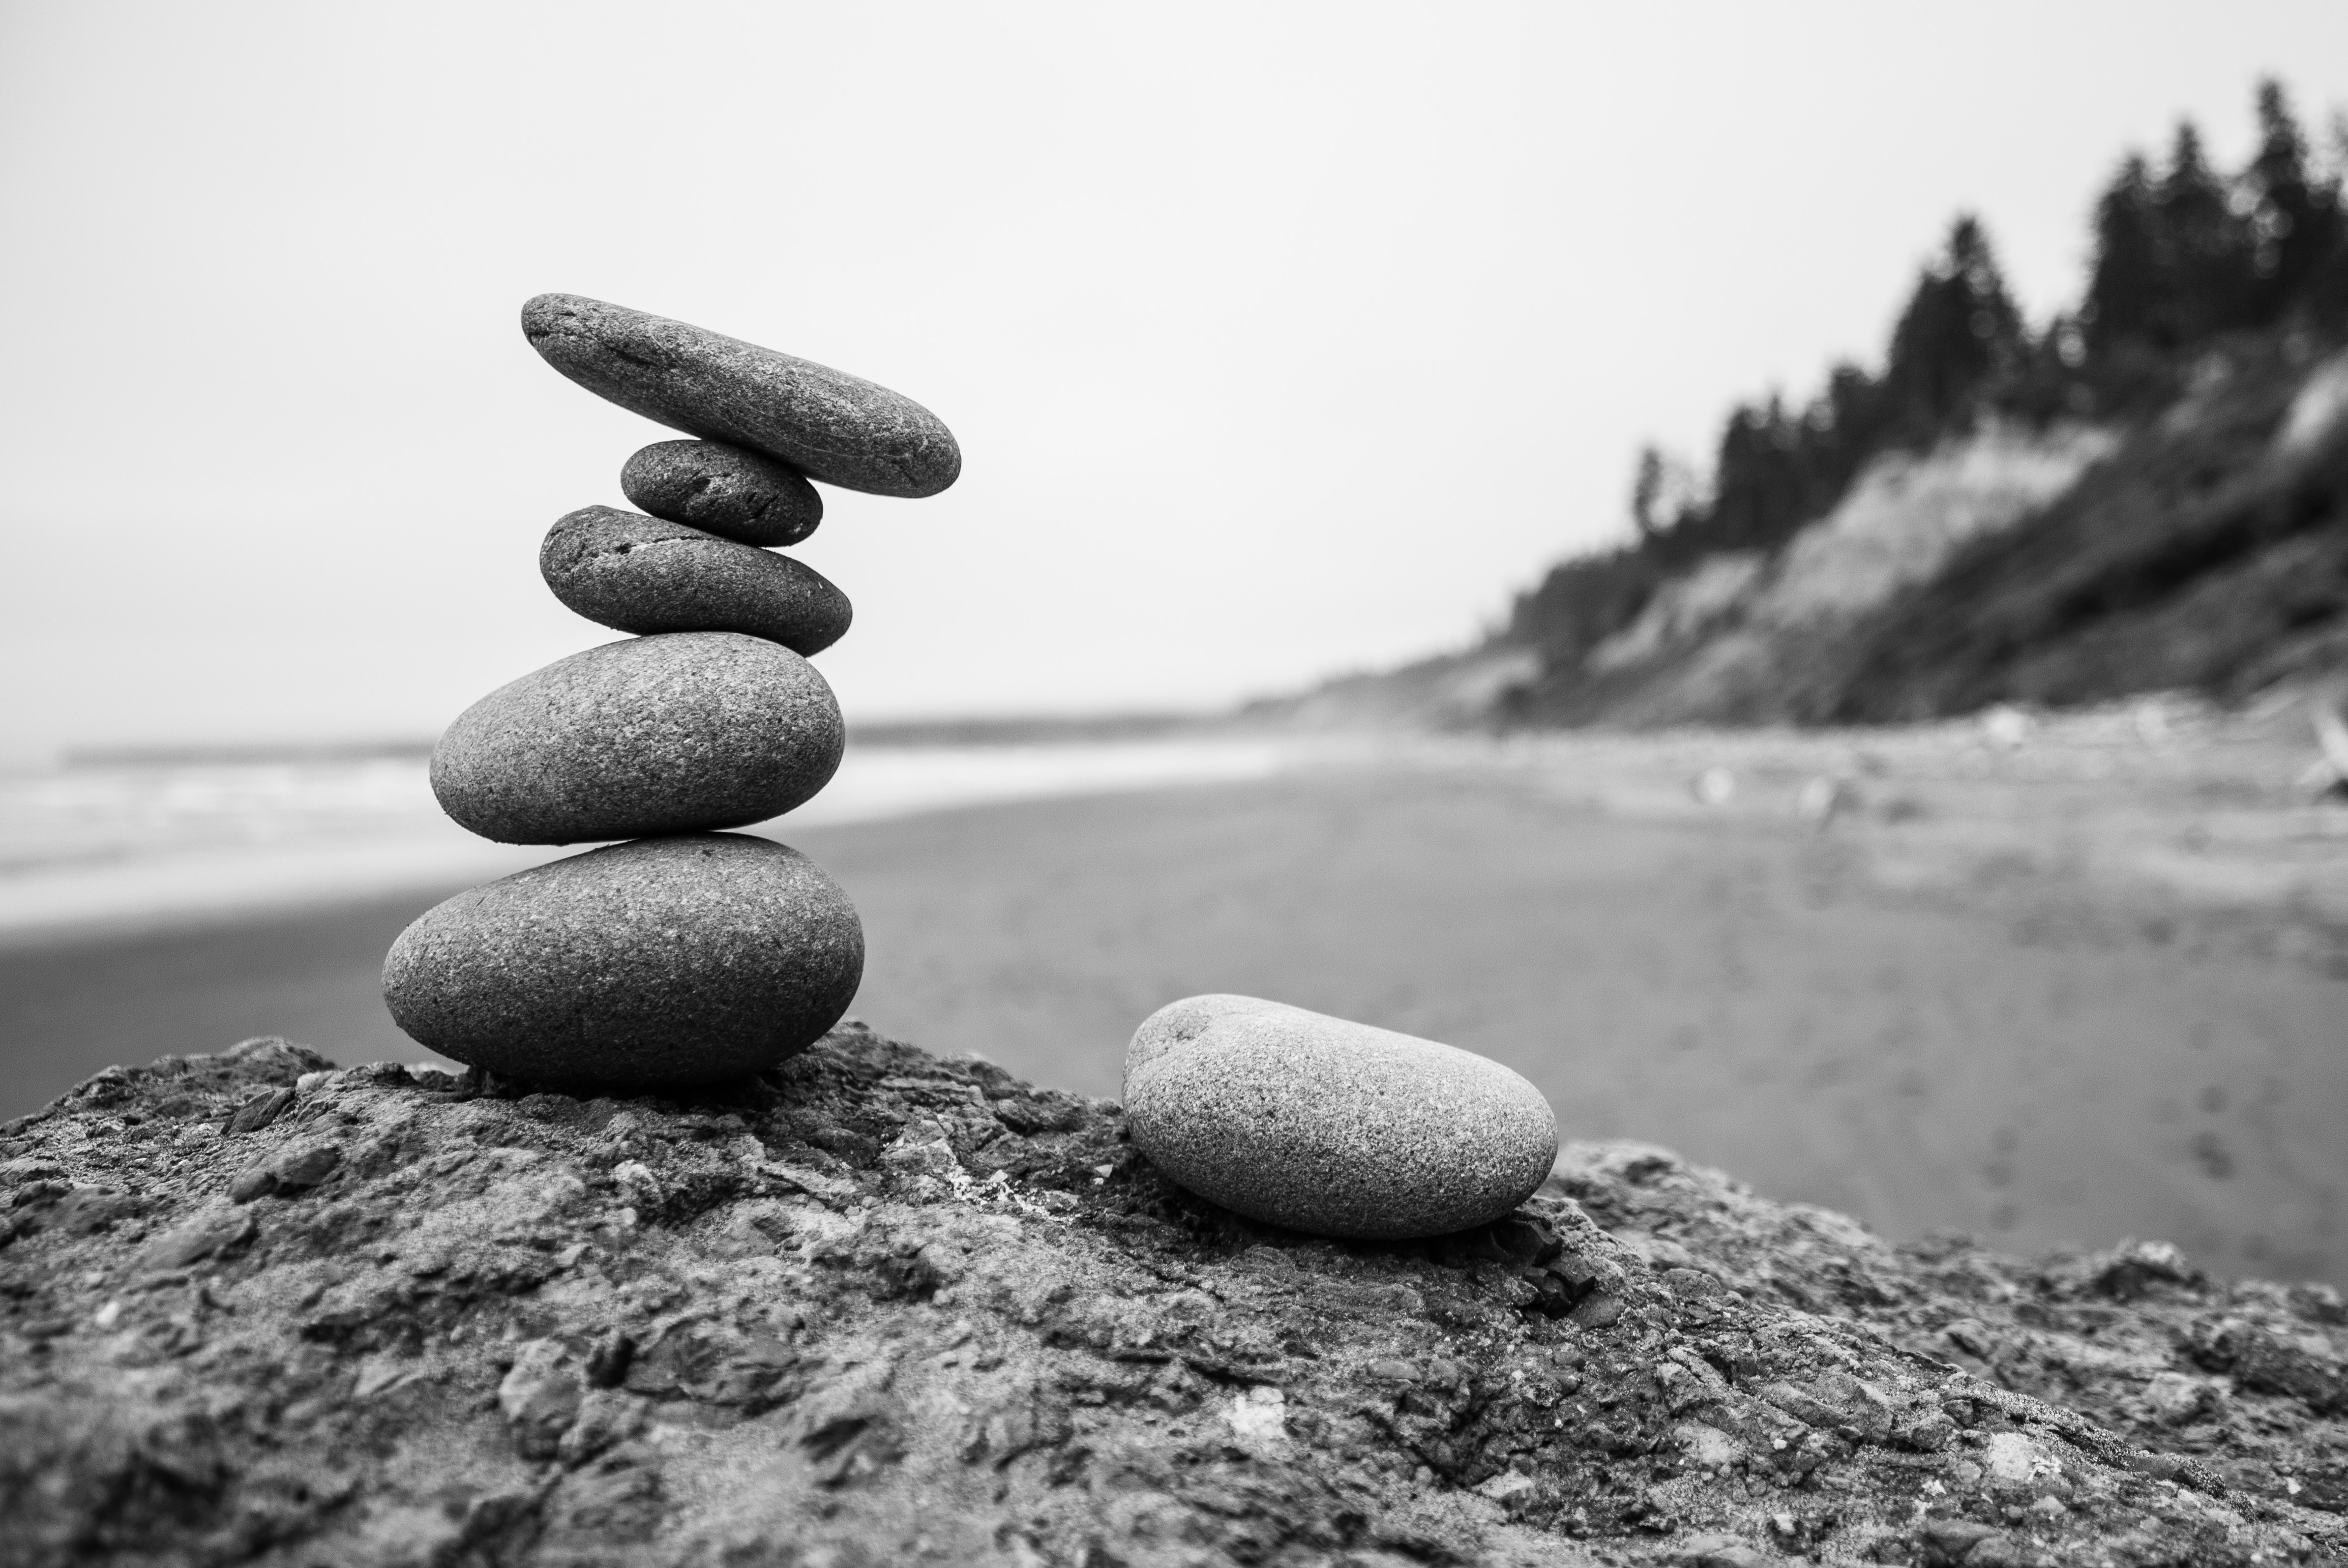 A pile of smooth stones stand on a sandy beach in a black and white photograph. God gave us the Proverbs to teach us and provide us with wisdom for life.